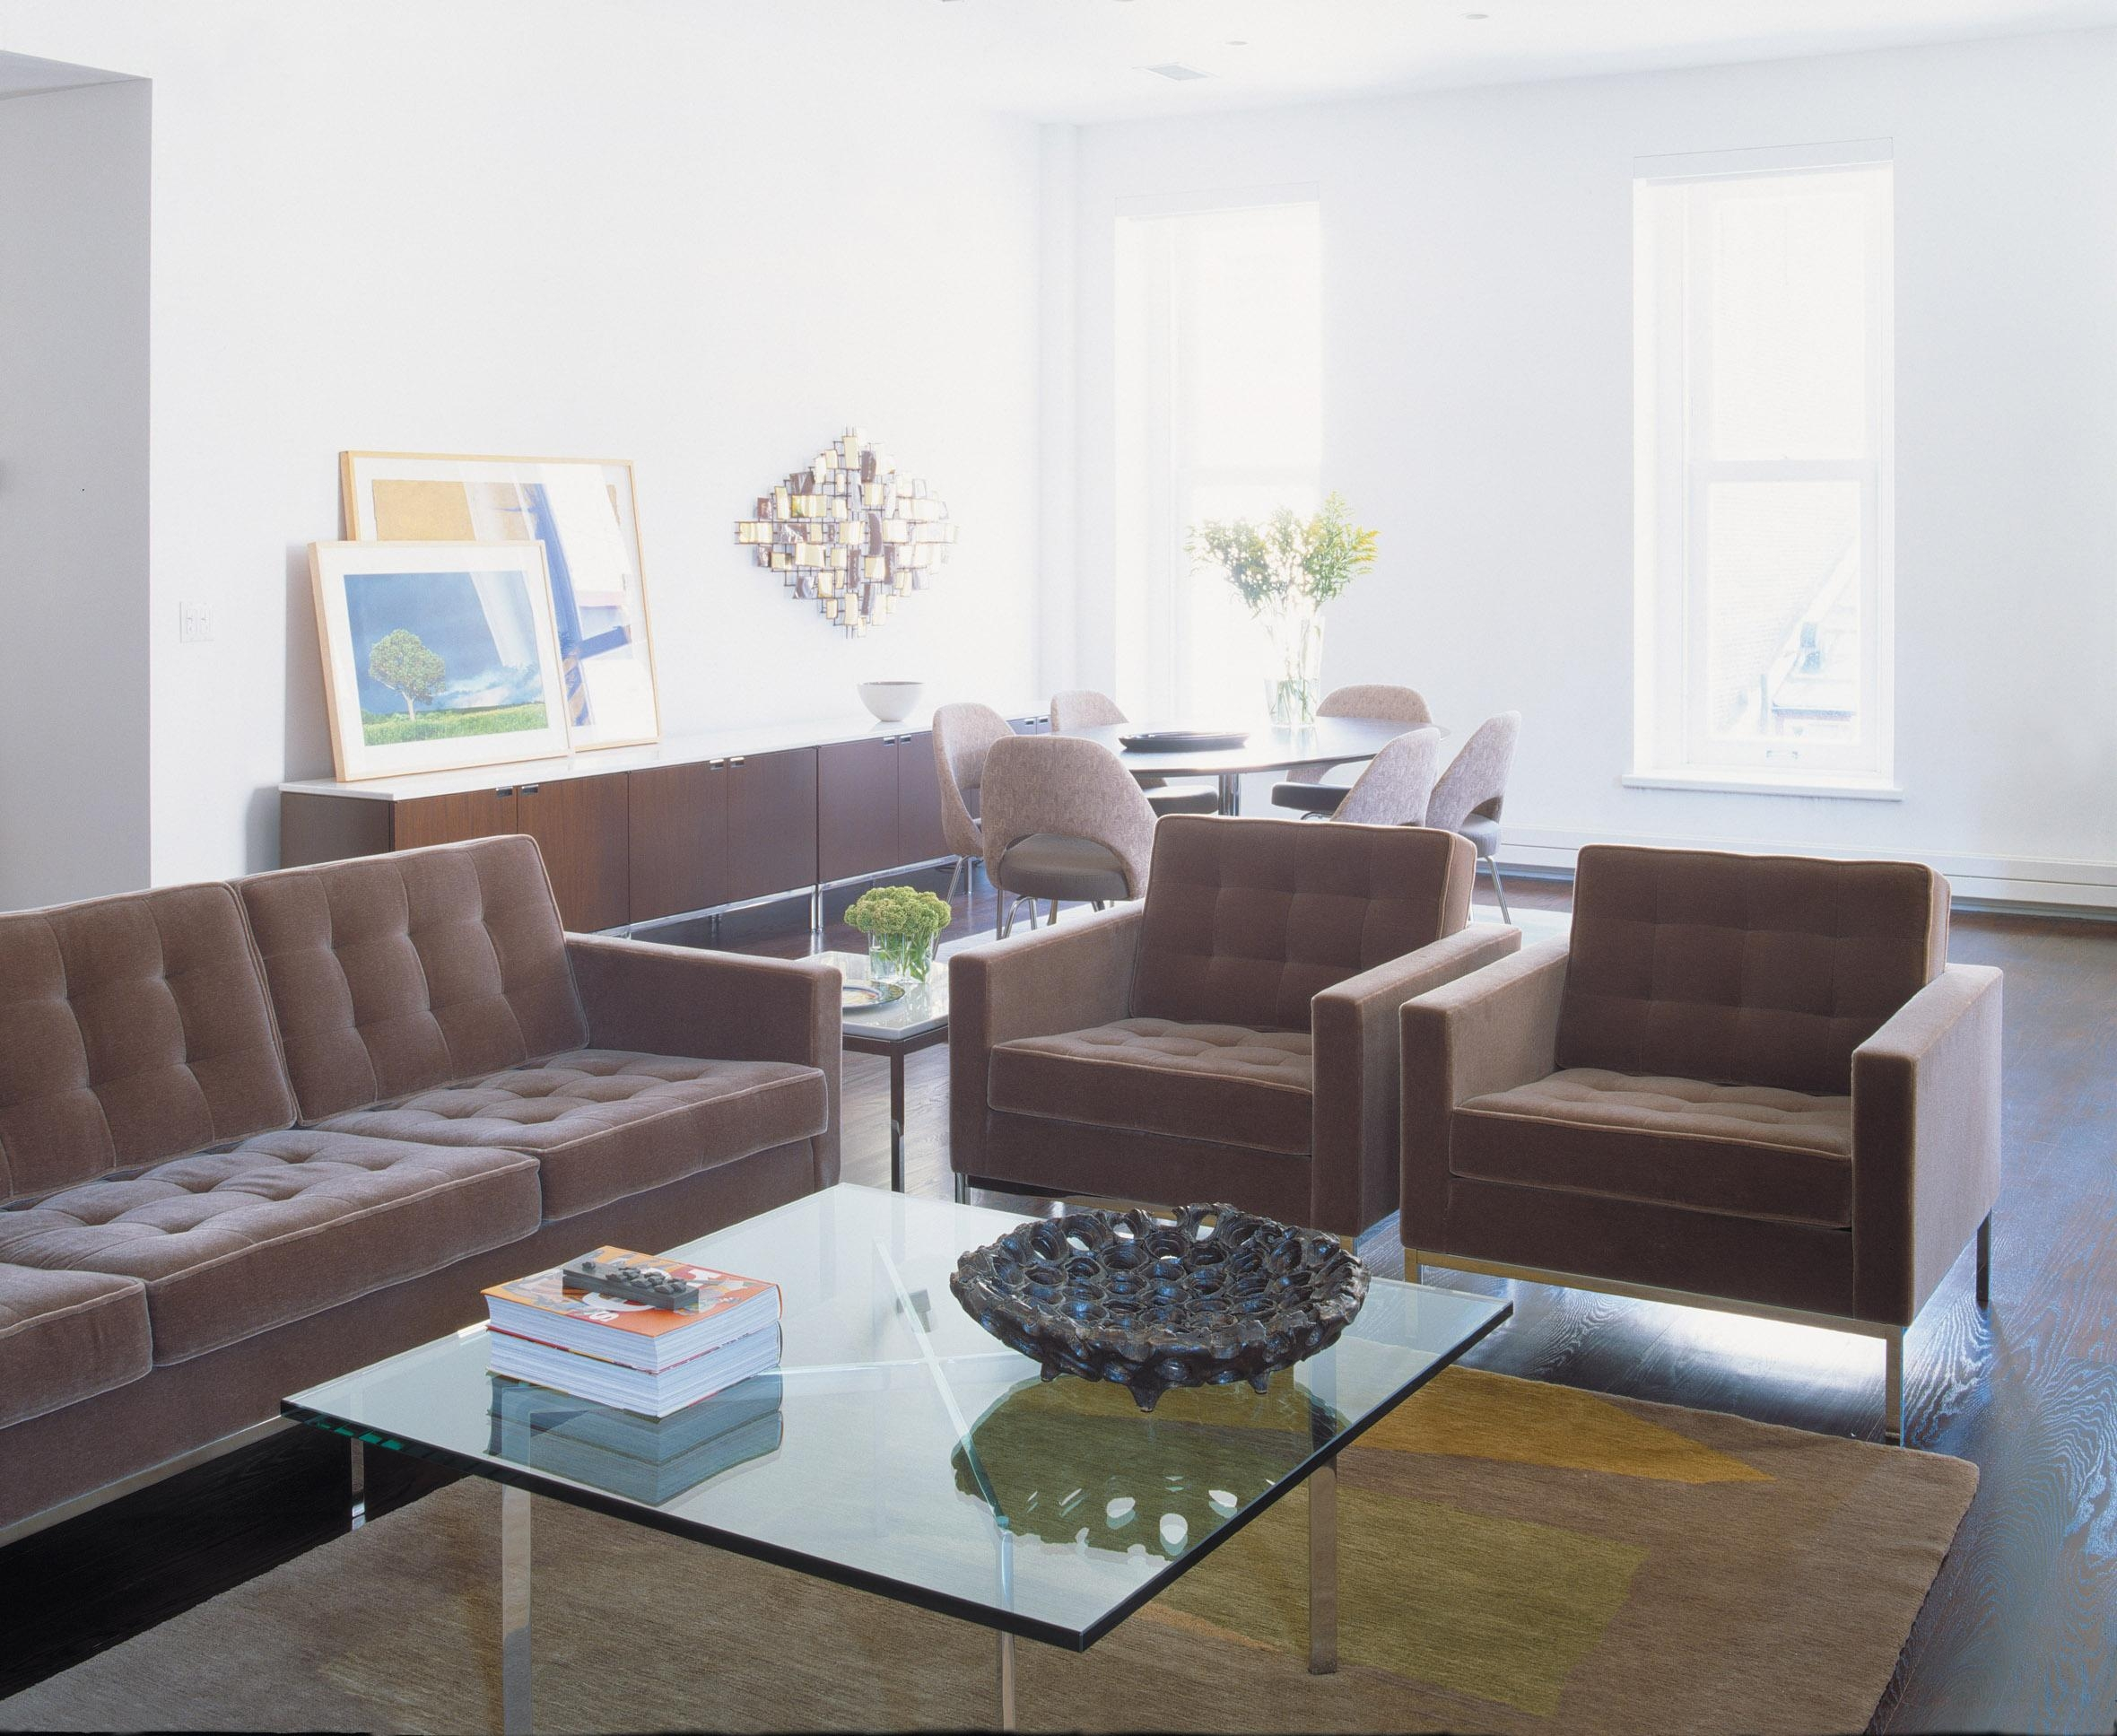 Knoll Velvet Upholstery | Knolltextiles In Florence Medium Sofas (View 3 of 20)